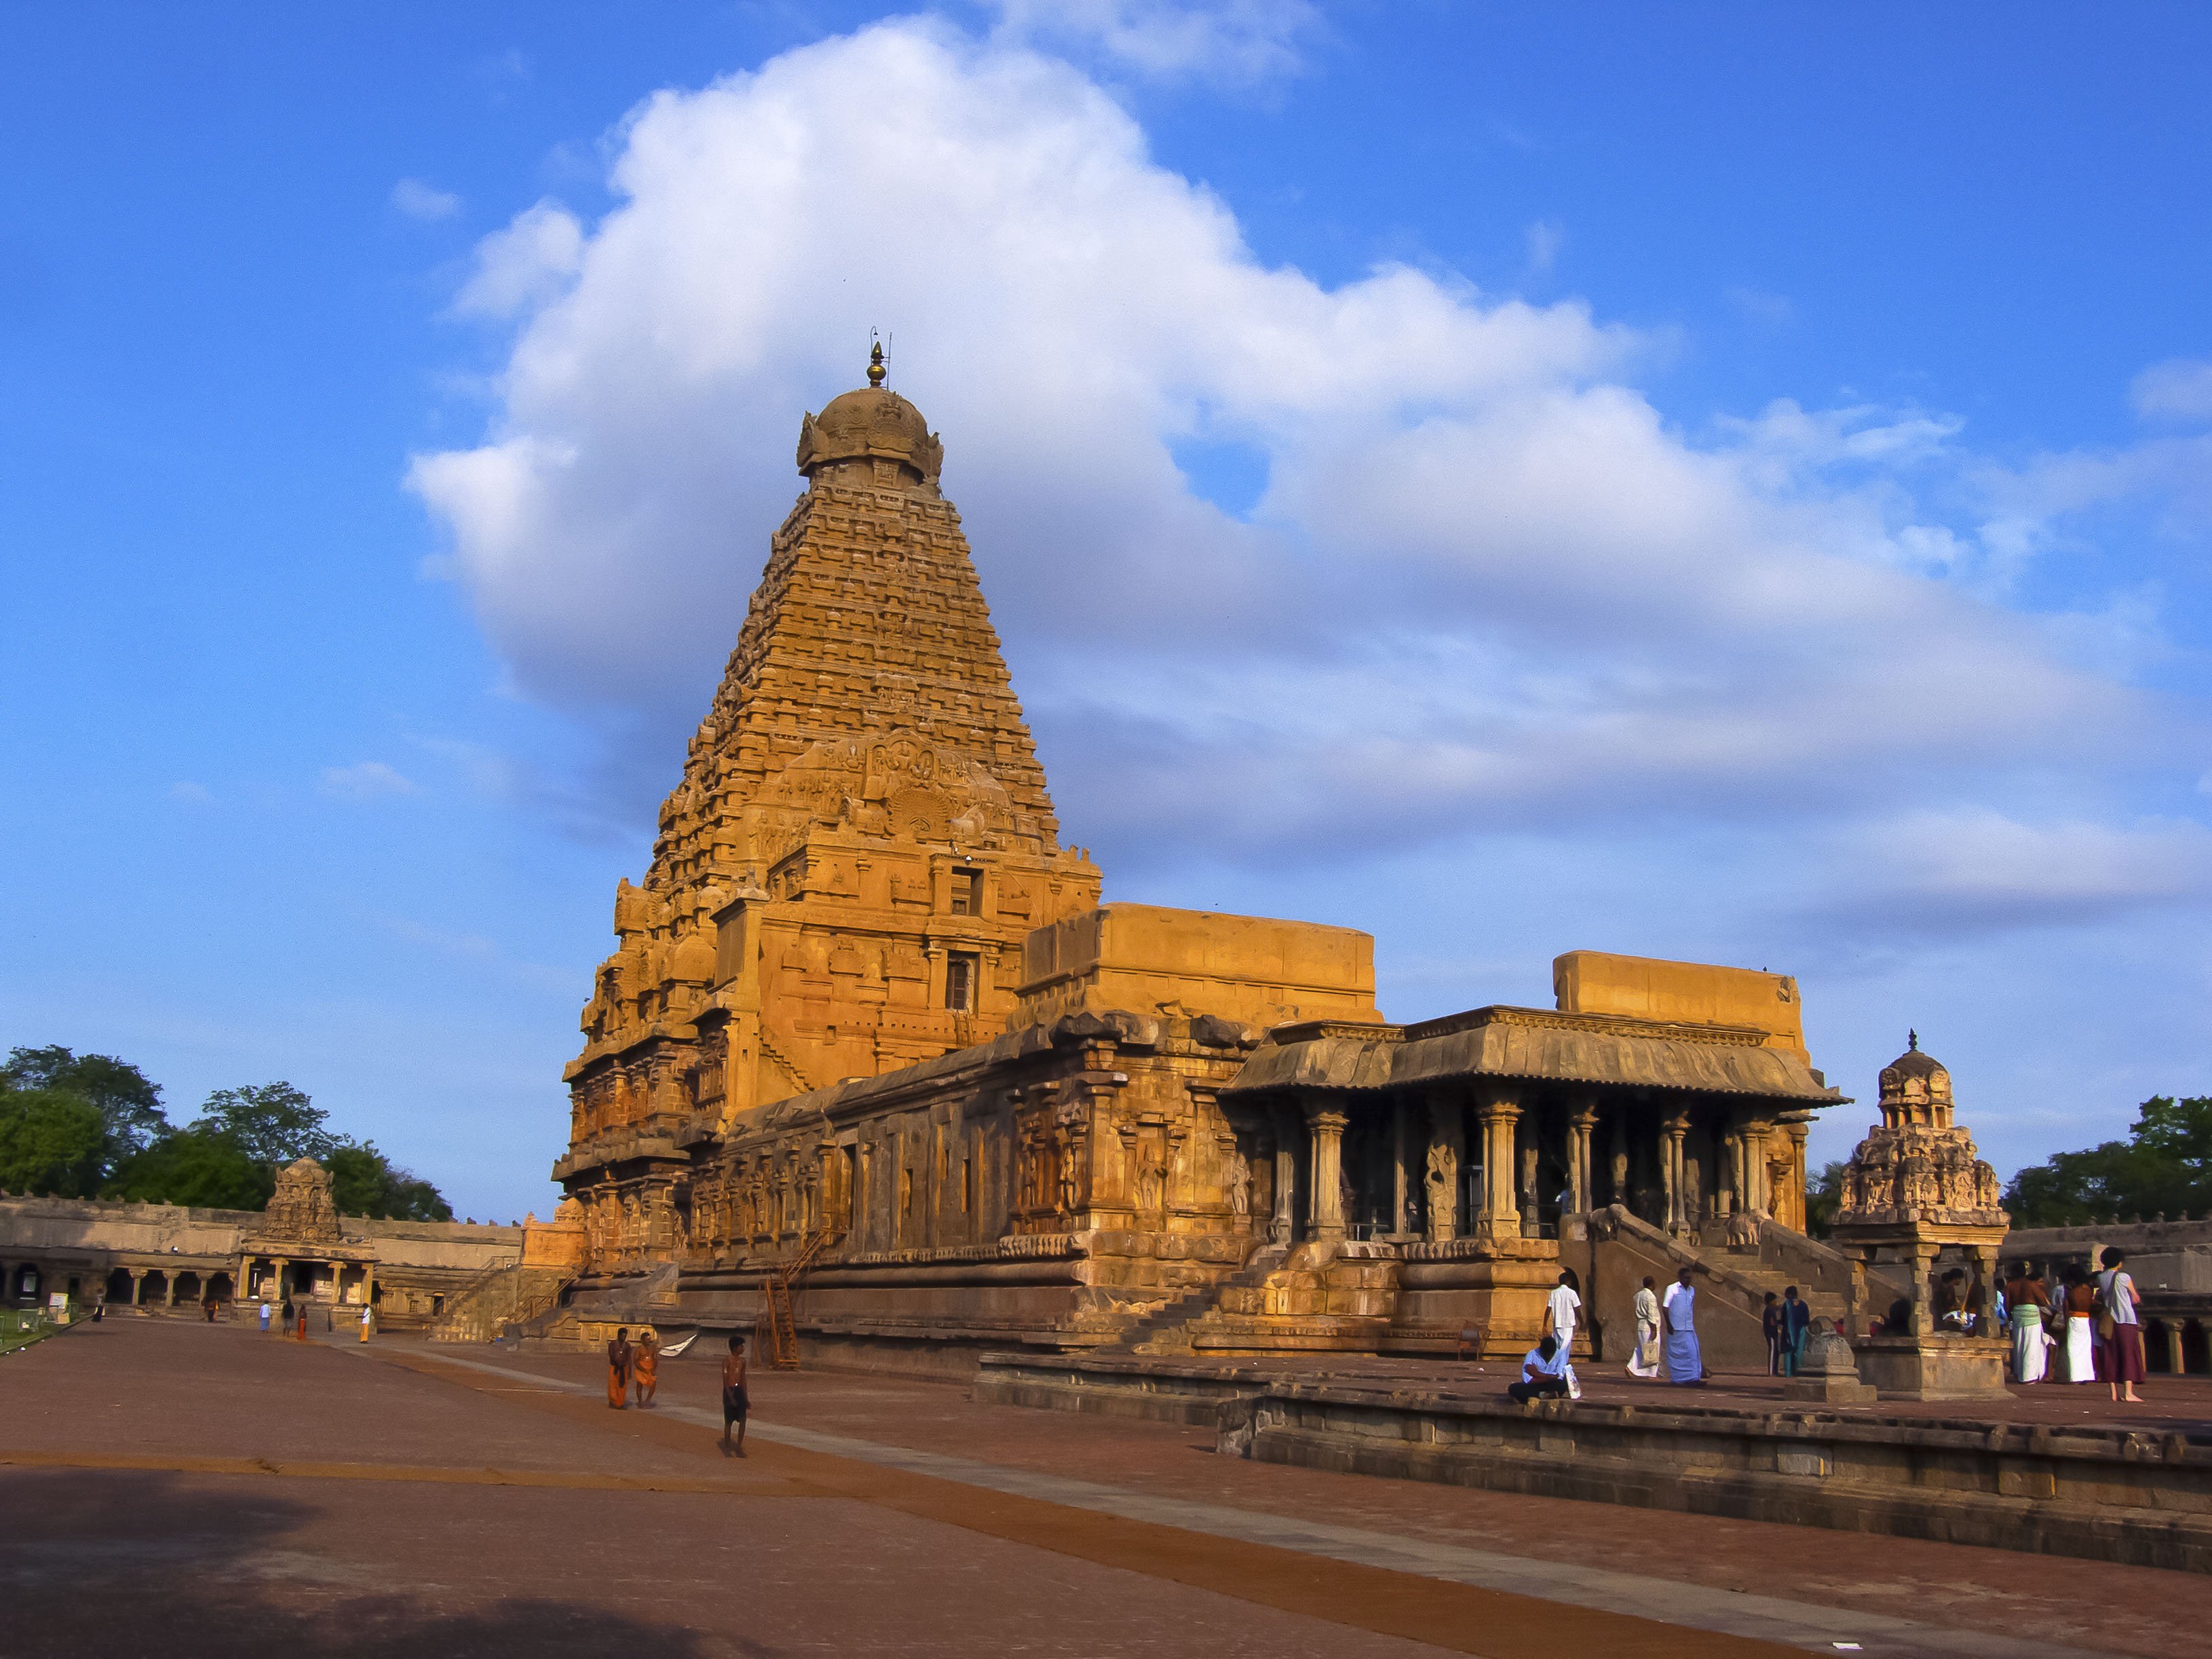 The Big Temple, Thanjavur